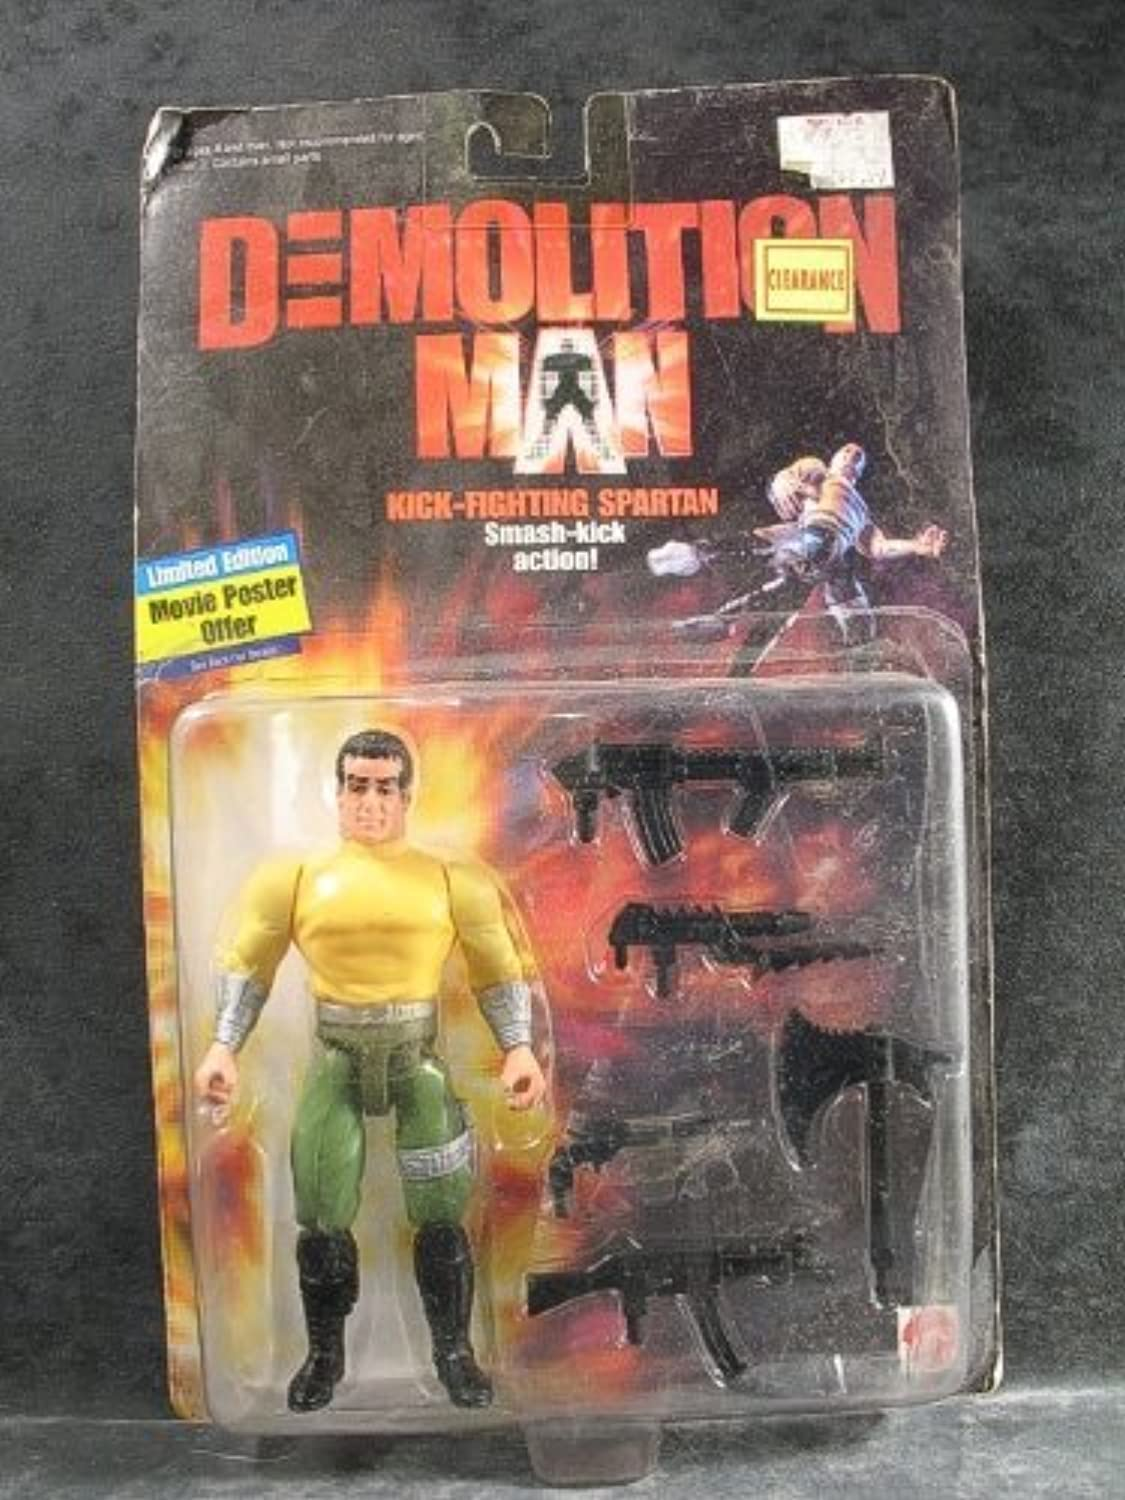 Demolition Man KickFighting Spartan Action Figure